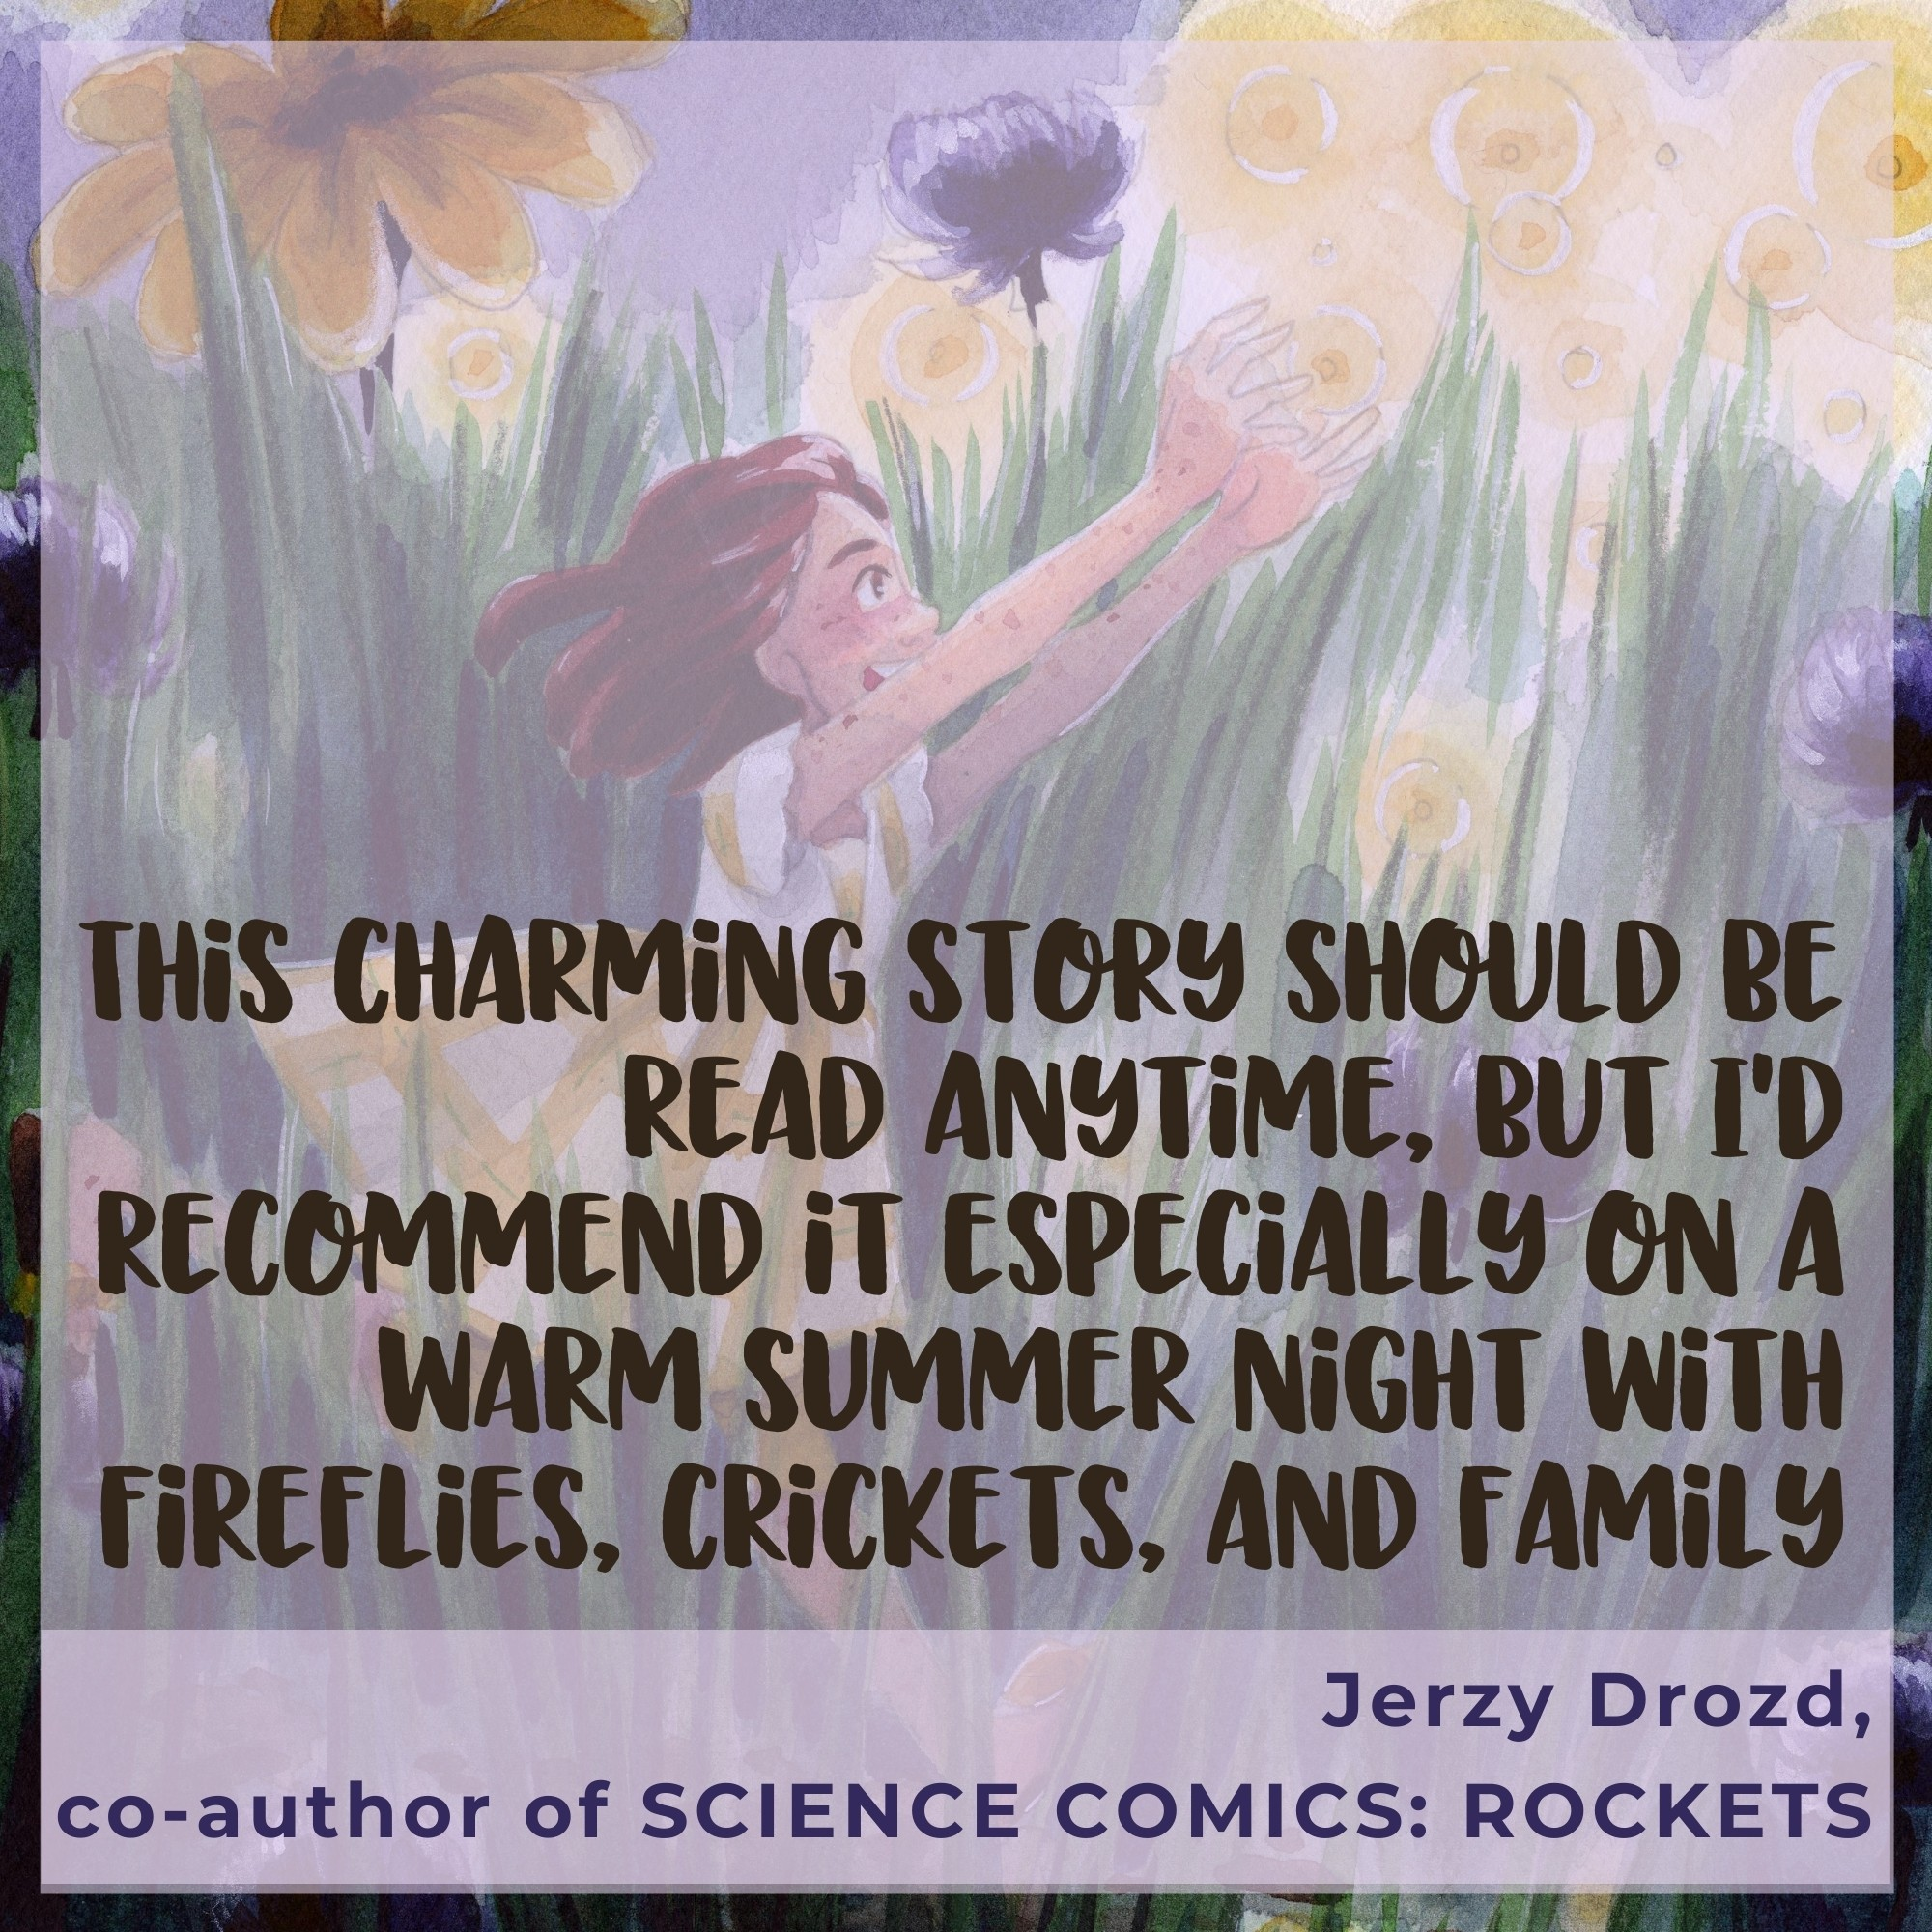 'A charming story that will make you hope to find tiny friends in the summertime. Becca's characters bubble with joy and affection.' -Jerzy Drozd, co-author of SCIENCE COMICS: ROCKETS